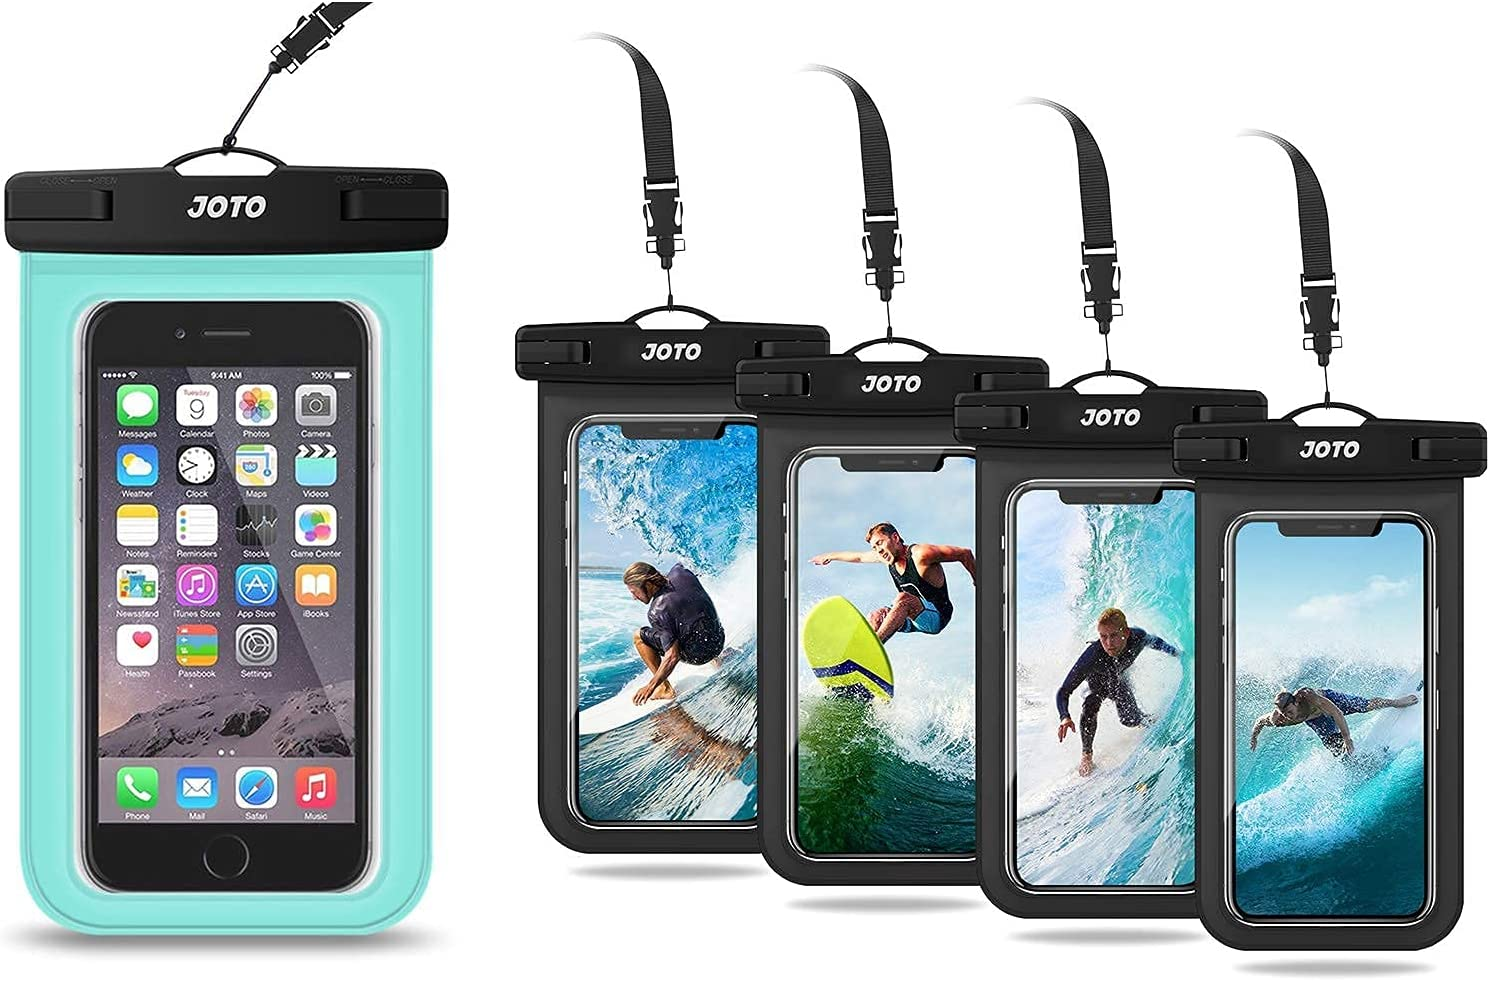 JOTO Universal Waterproof Pouch Cellphone Dry Bag Case(Green) Bundle with 4 Packs(Black) Universal Waterproof Pouch Cellphone Dry Bag Case